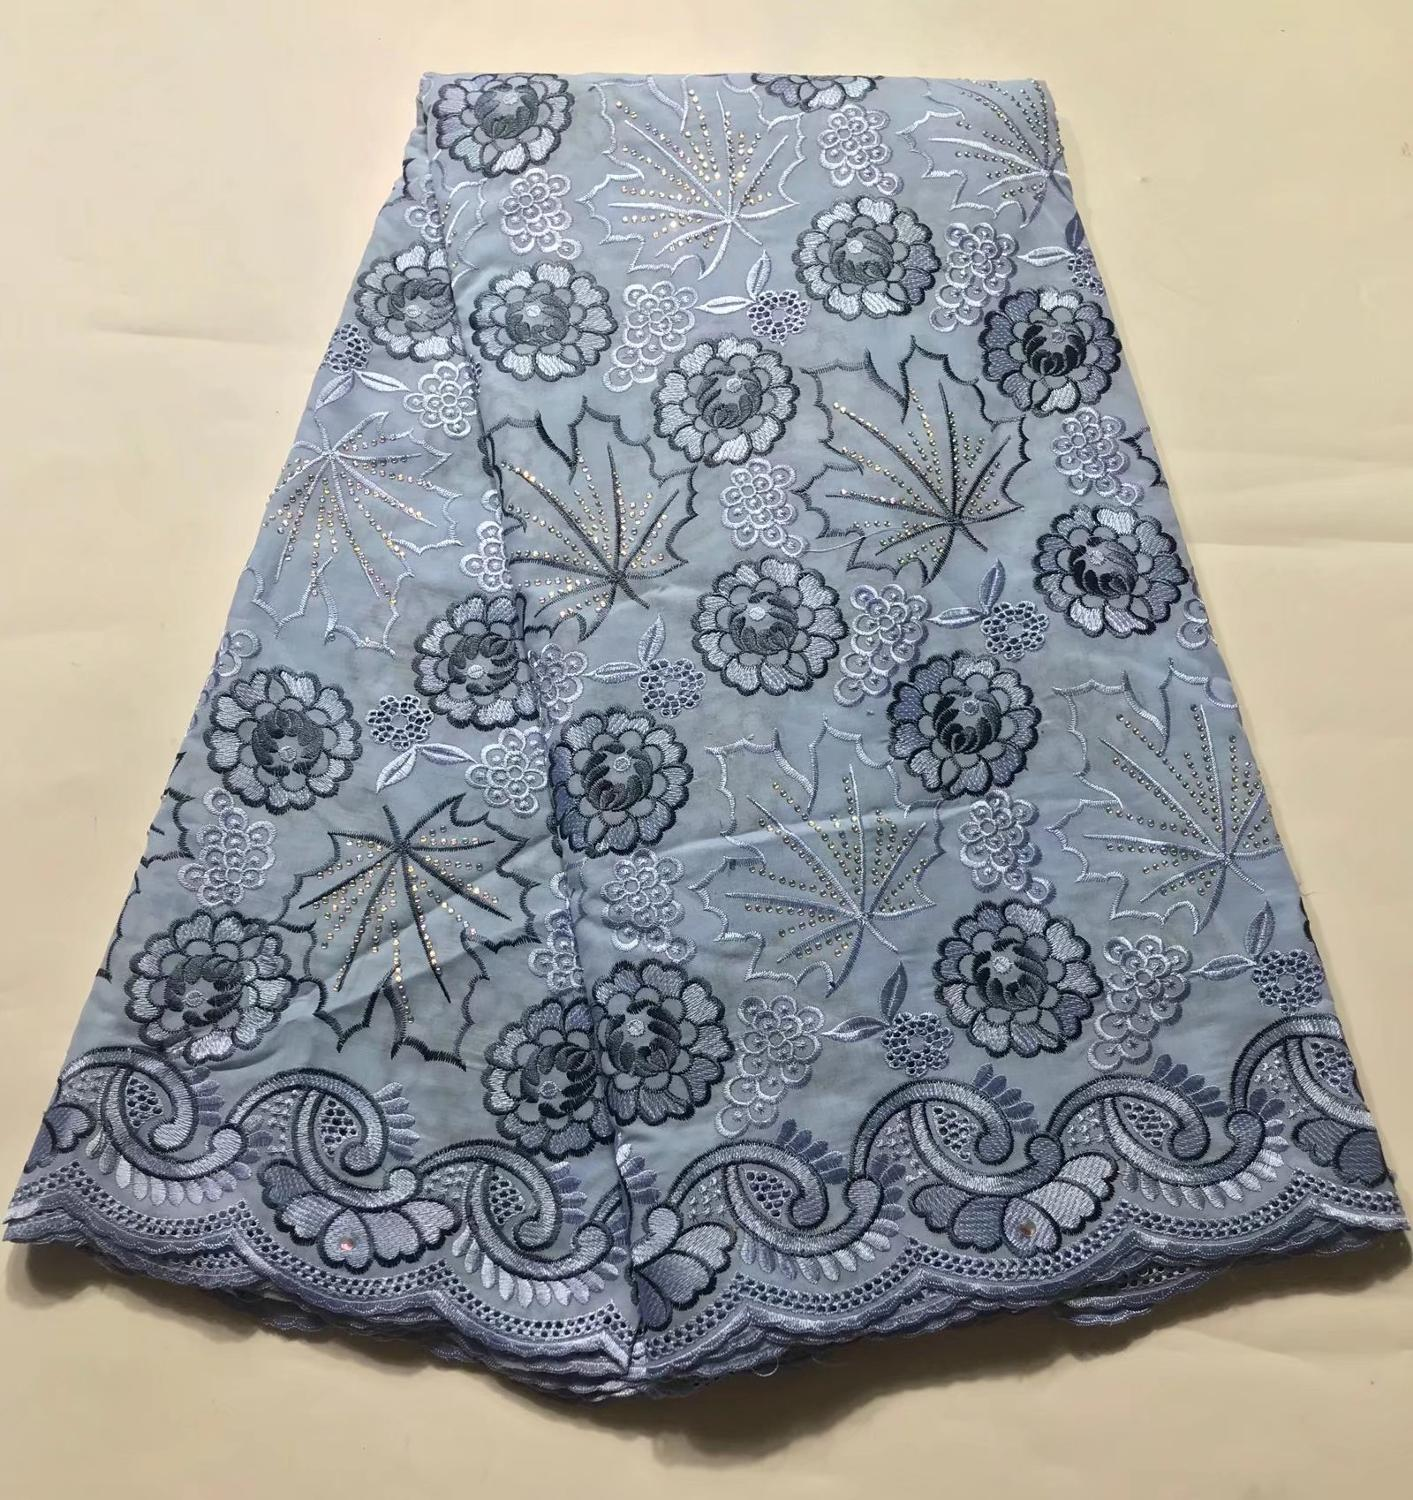 New African lace thread embroidered net French grey lace fabric Ladie Nigeria Embroidery transparent mesh guipure lace fabricNew African lace thread embroidered net French grey lace fabric Ladie Nigeria Embroidery transparent mesh guipure lace fabric